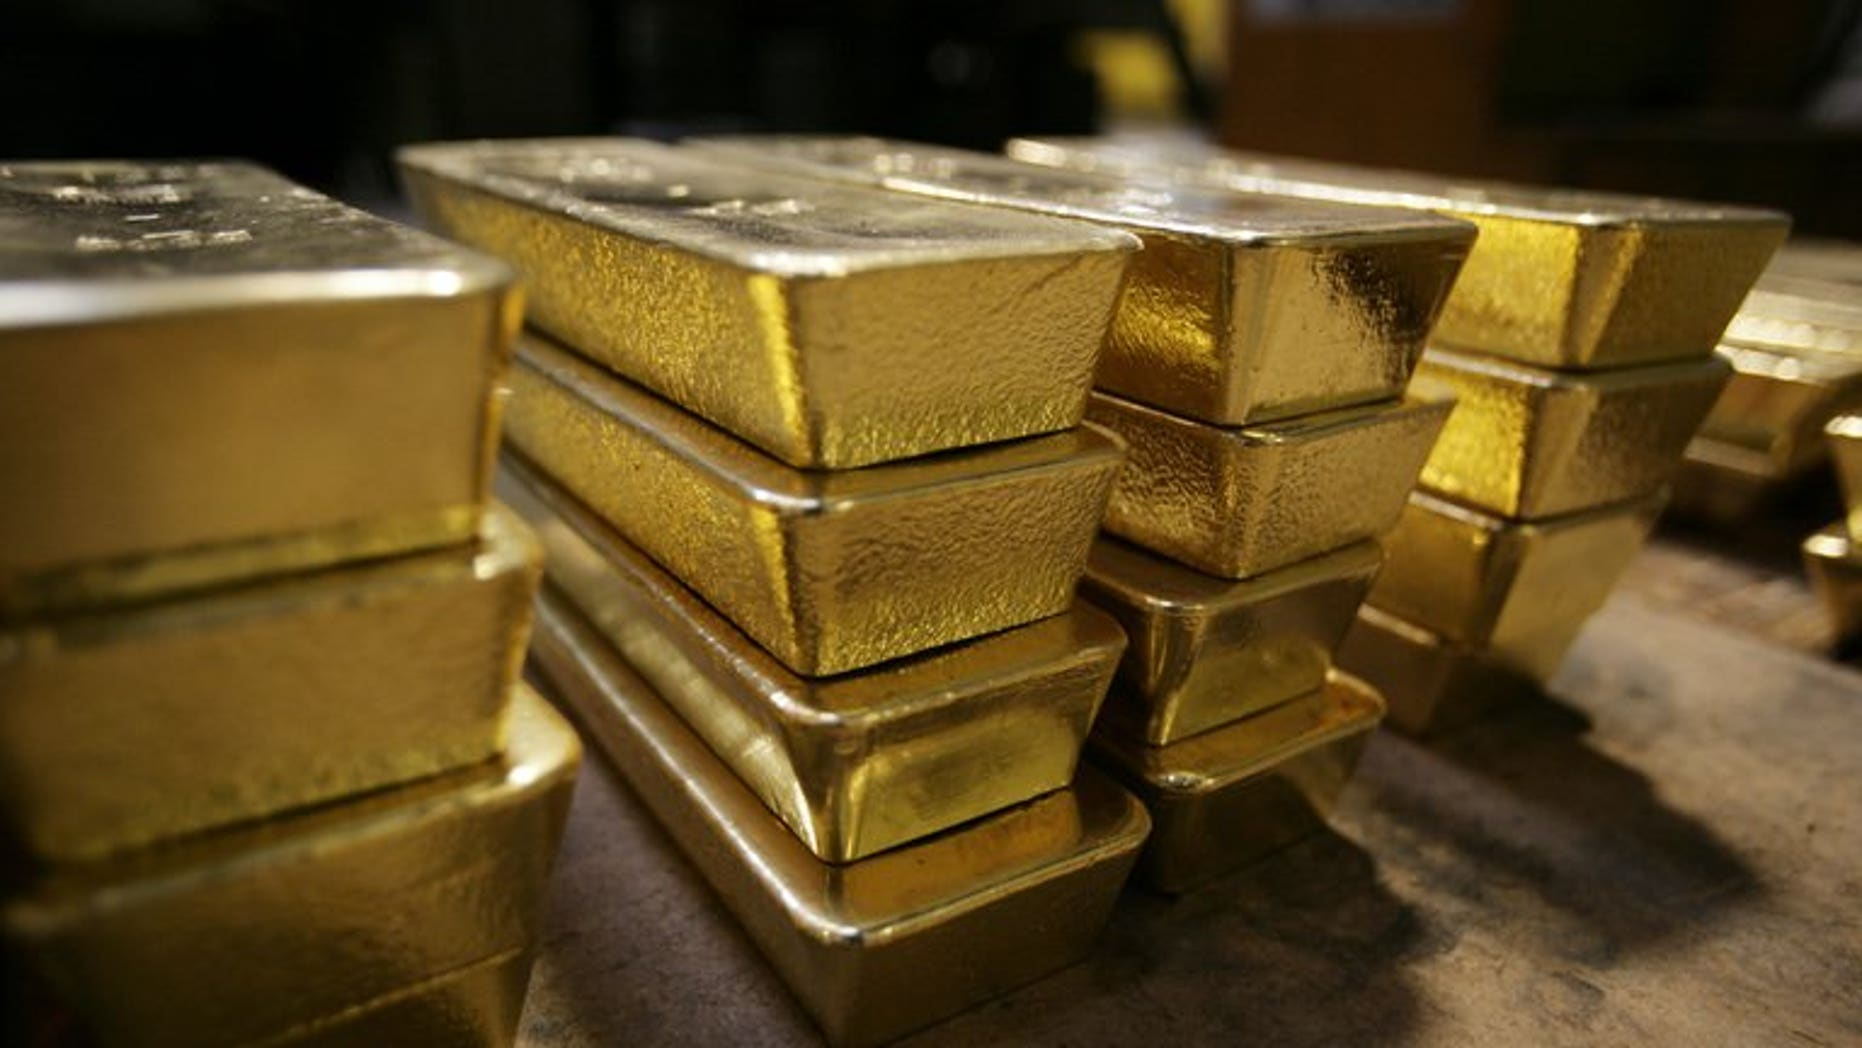 Seizure of smuggled gold in India soared 365 percent in the first quarter of the year, a report said Saturday, following curbs on imports of the precious metal to plug a yawning trade gap.